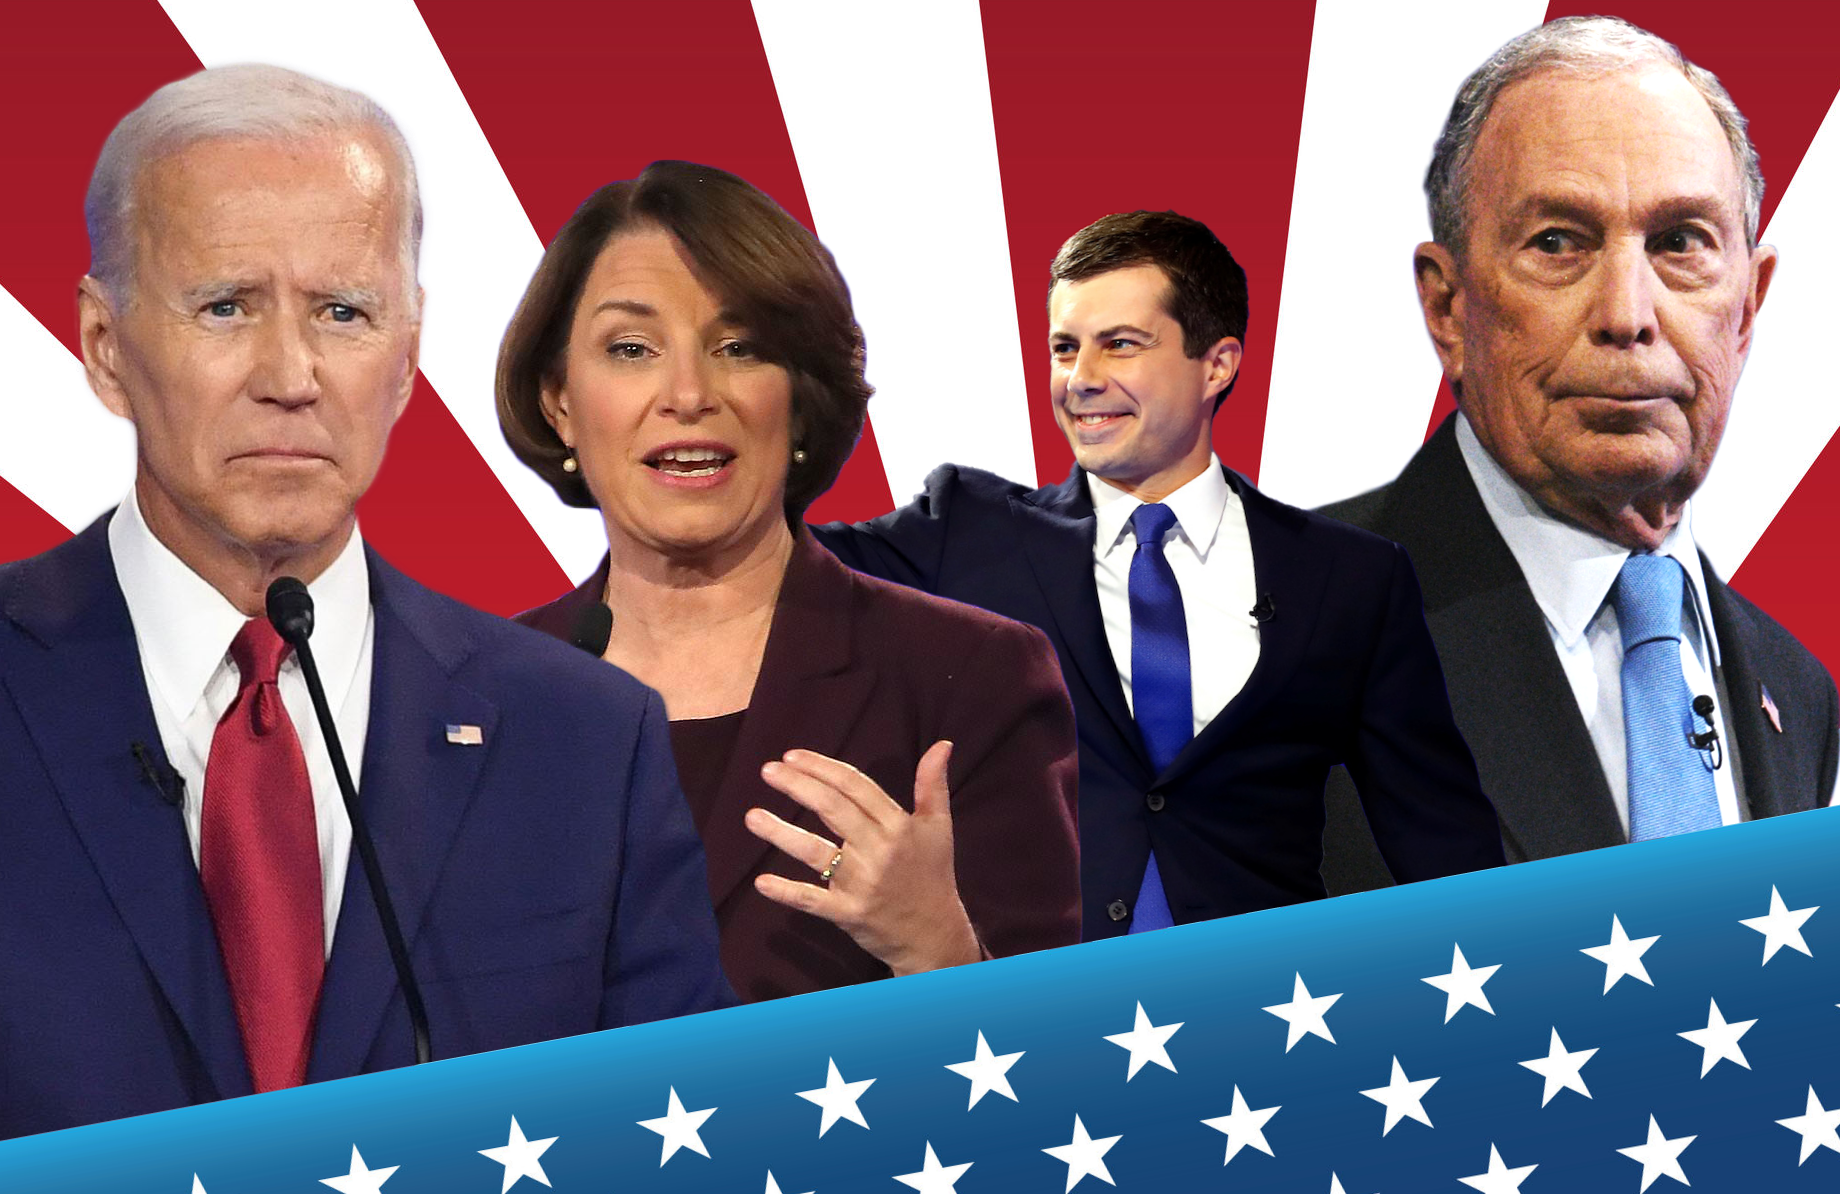 The leading candidates for the Democratic nomination (including Bernie Sanders, Elizabeth Warren and Tom Steyer, not pictured) will face off for their tenth debate tonight on CBS.